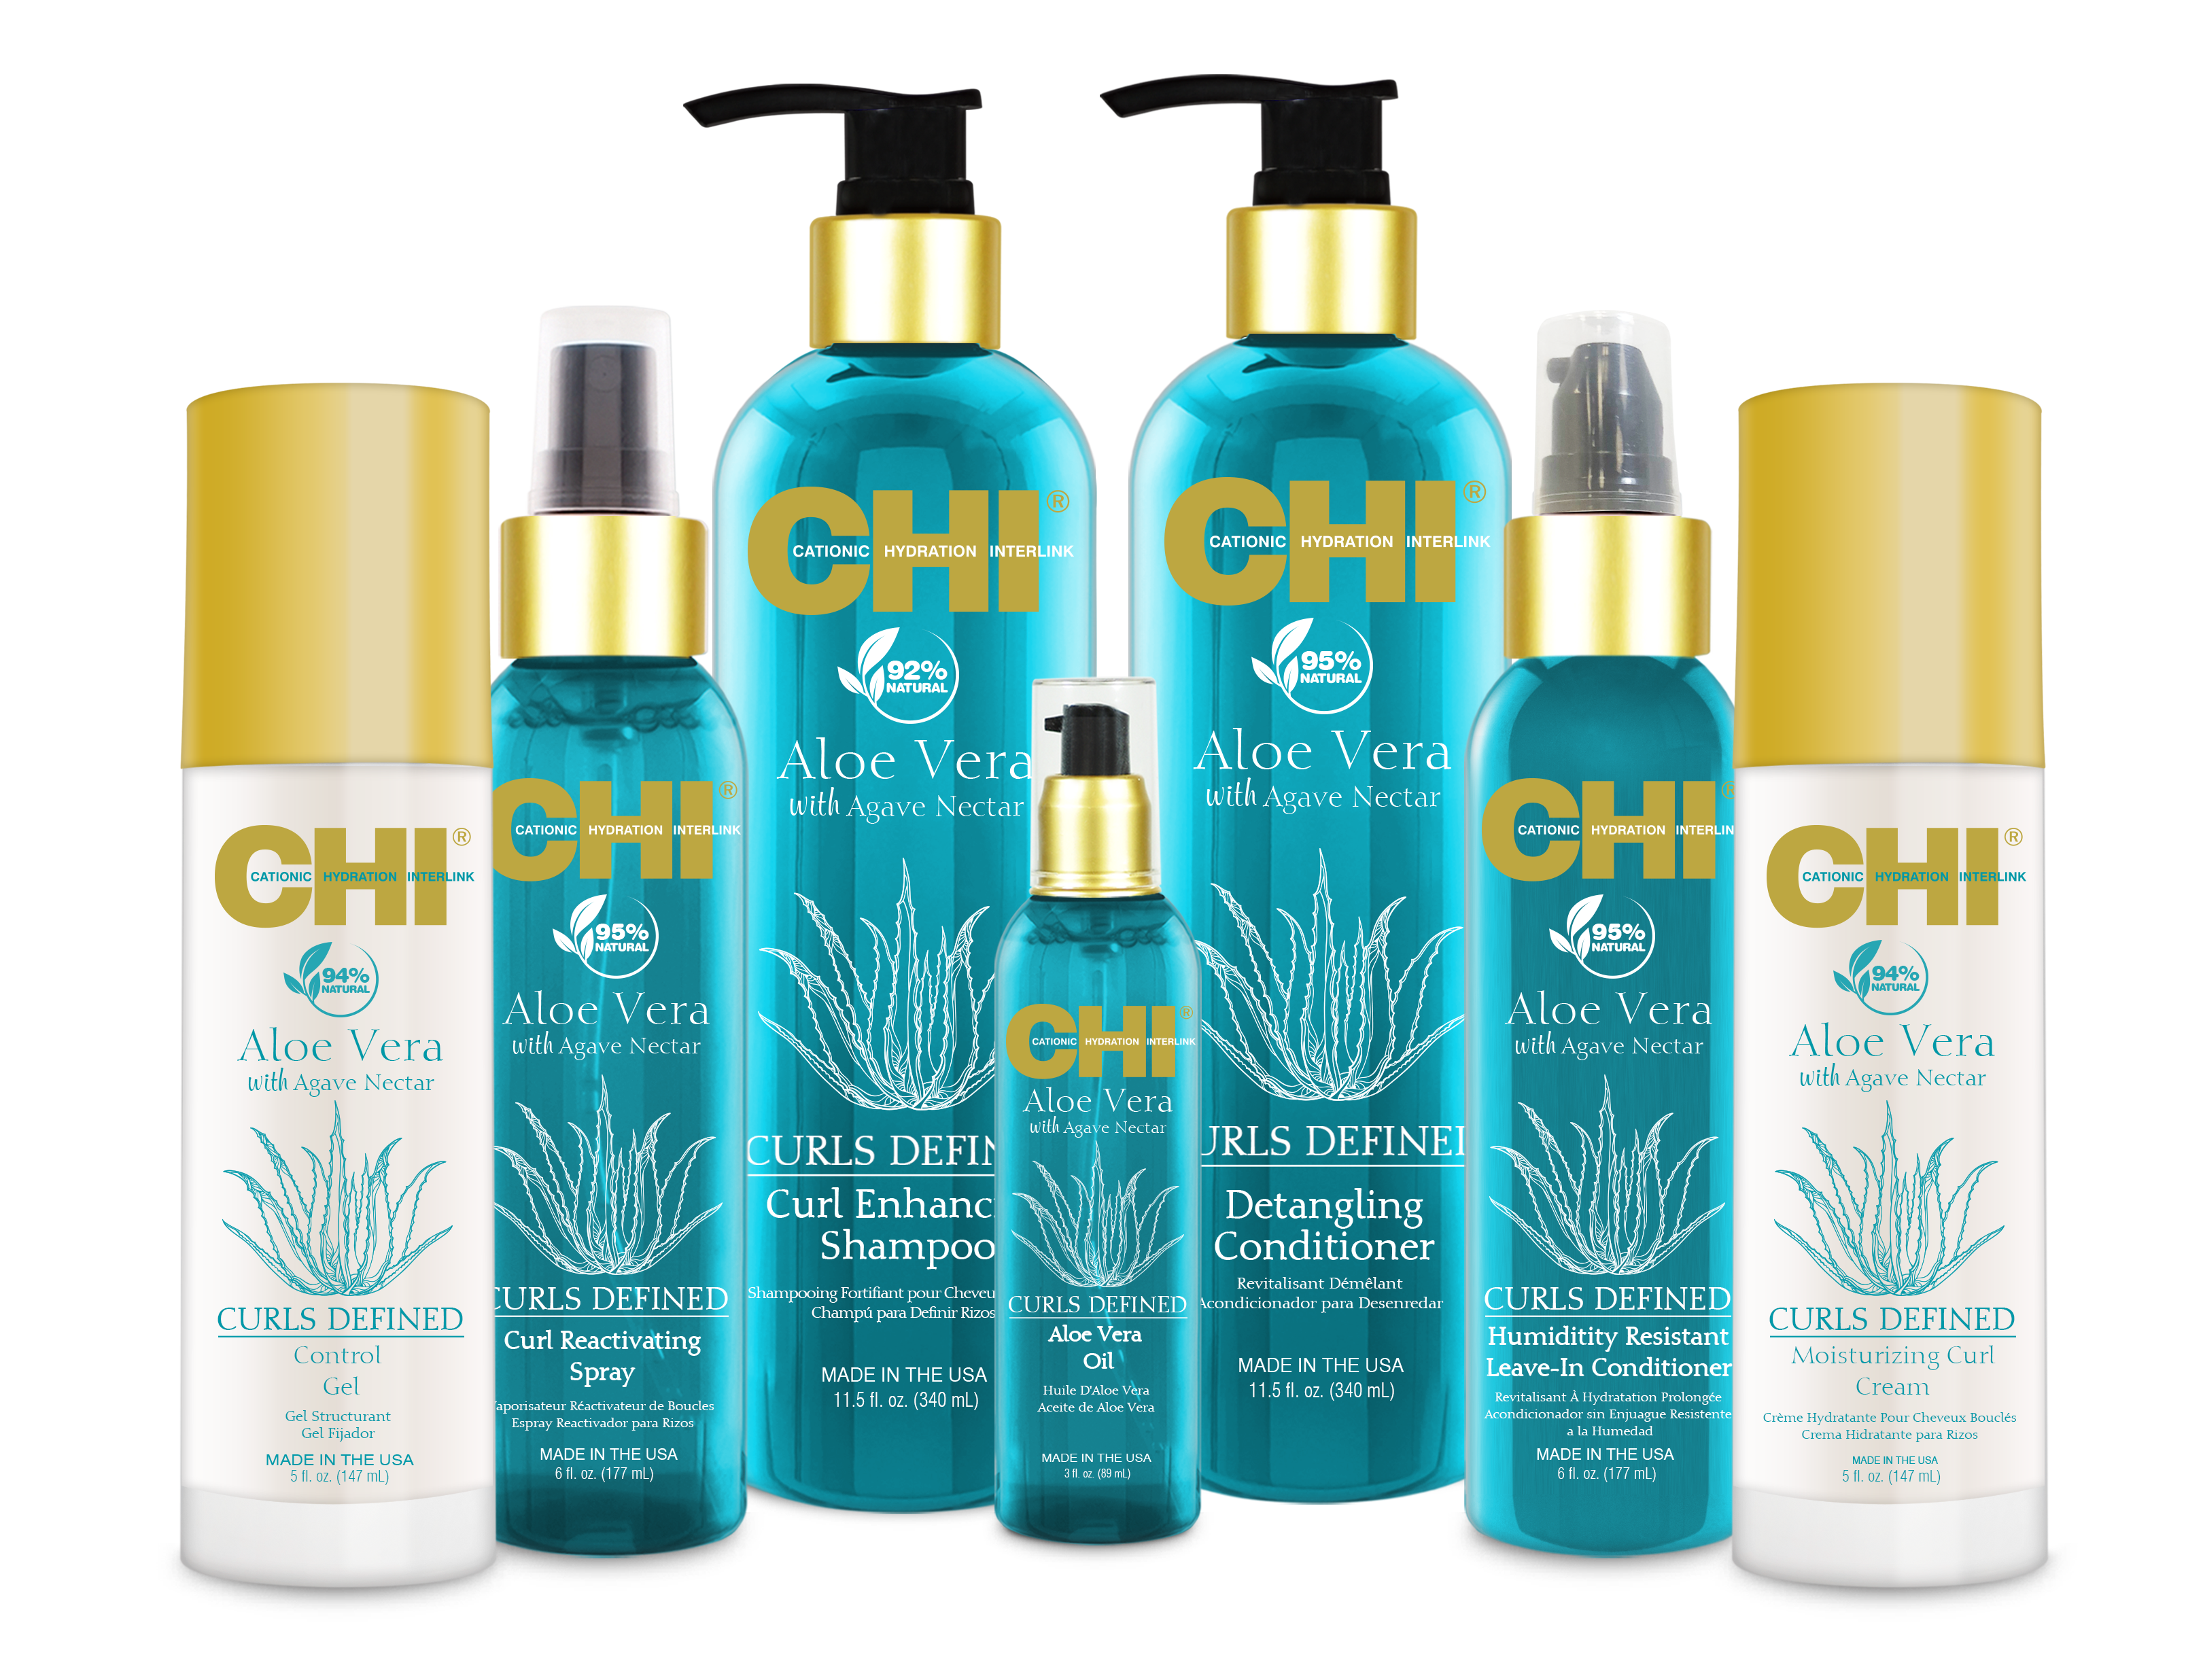 CHI Aloe Vera with Agave Nectar Haircare Collection